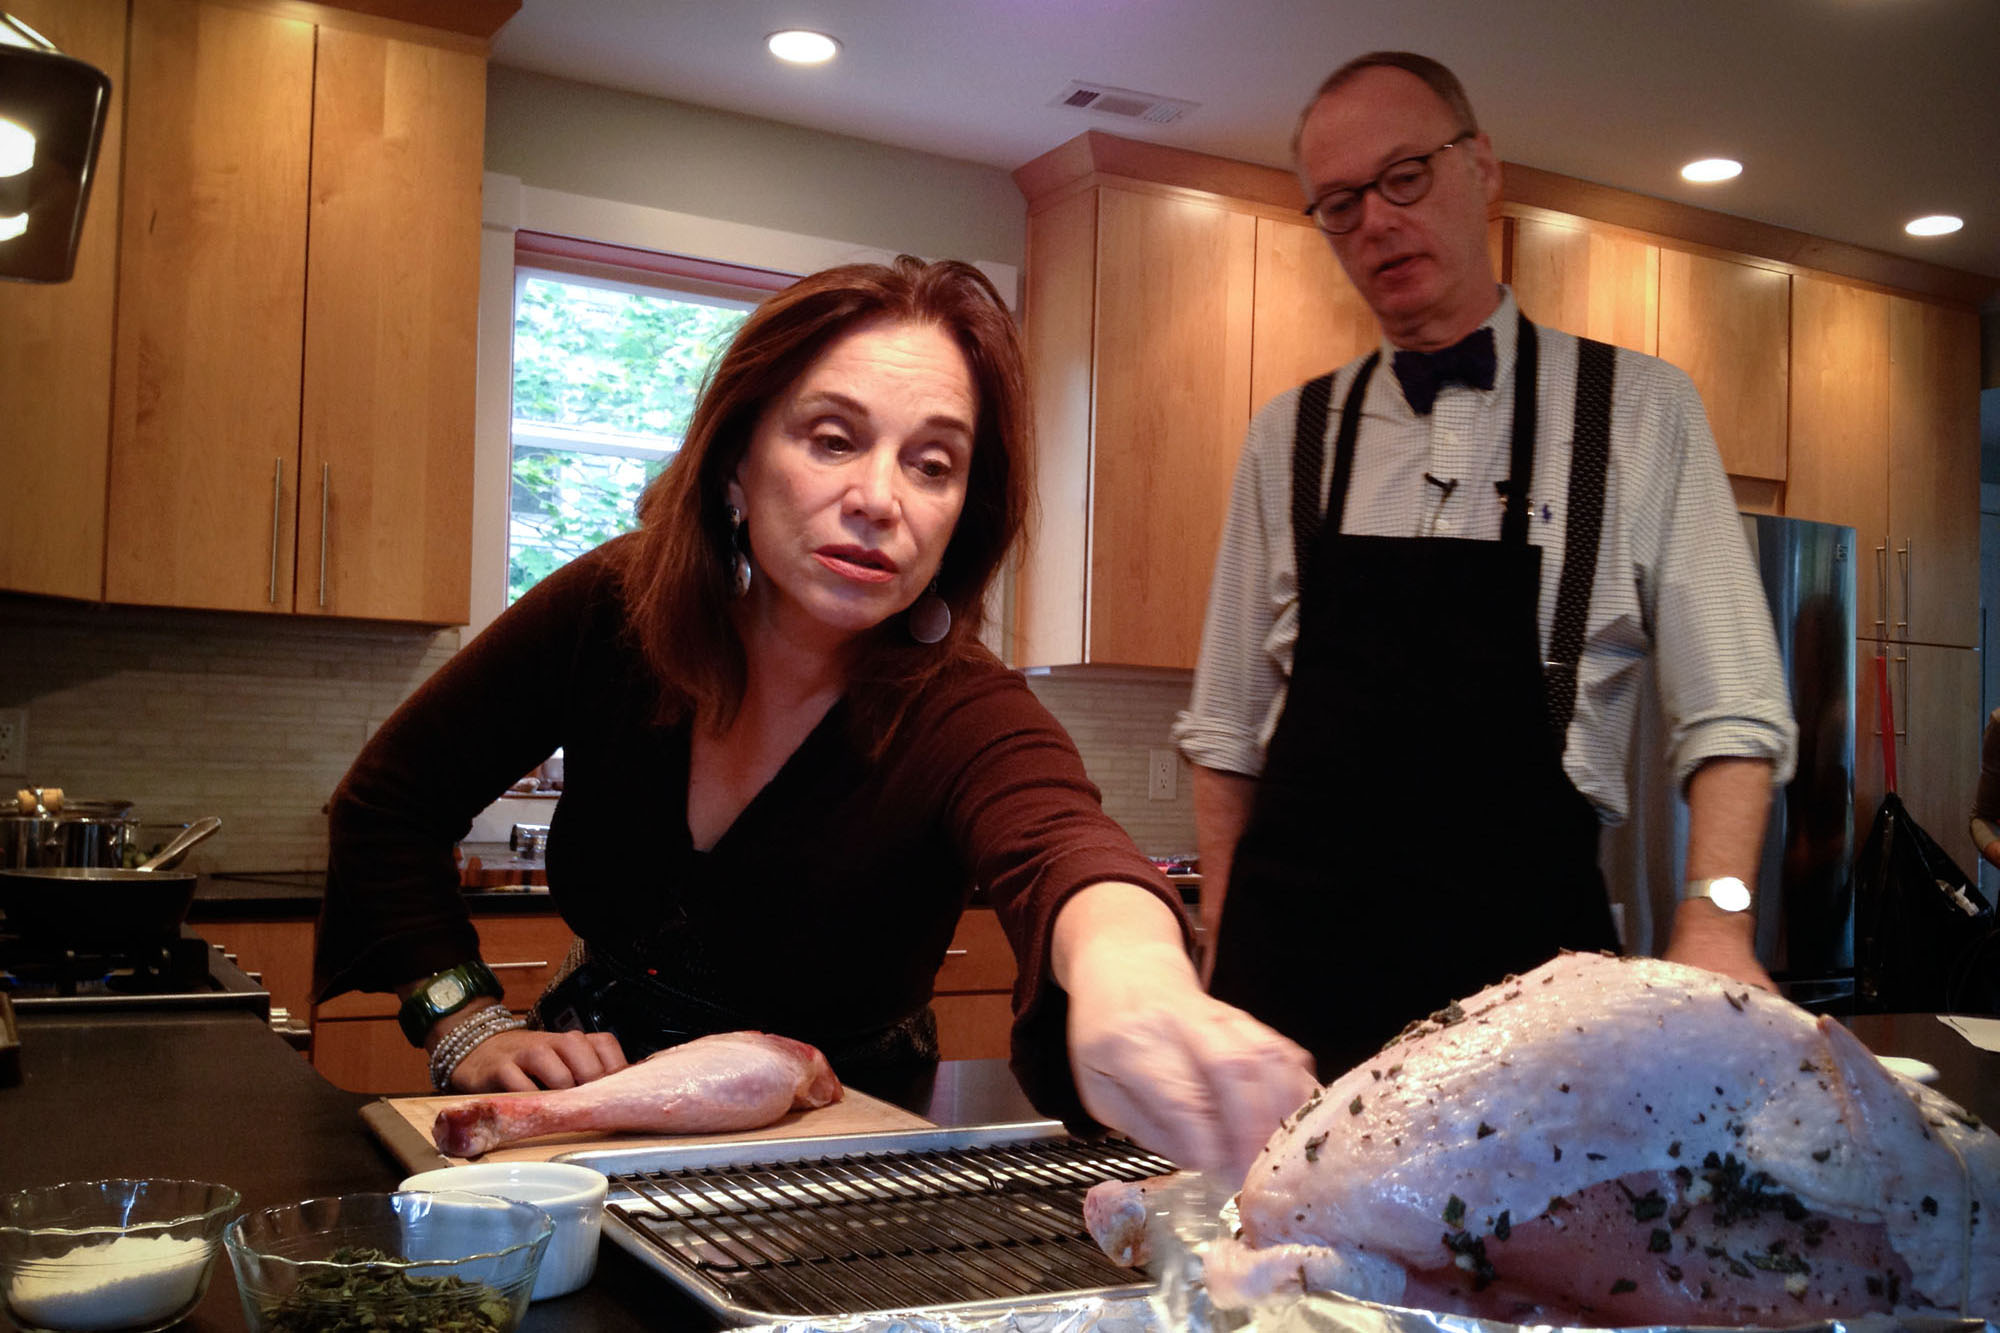 Morning Edition's Ren�ee Montagne reaches for the prepared turkey as Kimball explains how Child's recipe calls for the turkey breast to be butterflied and separated from the thighs and legs and cooked in different pans.